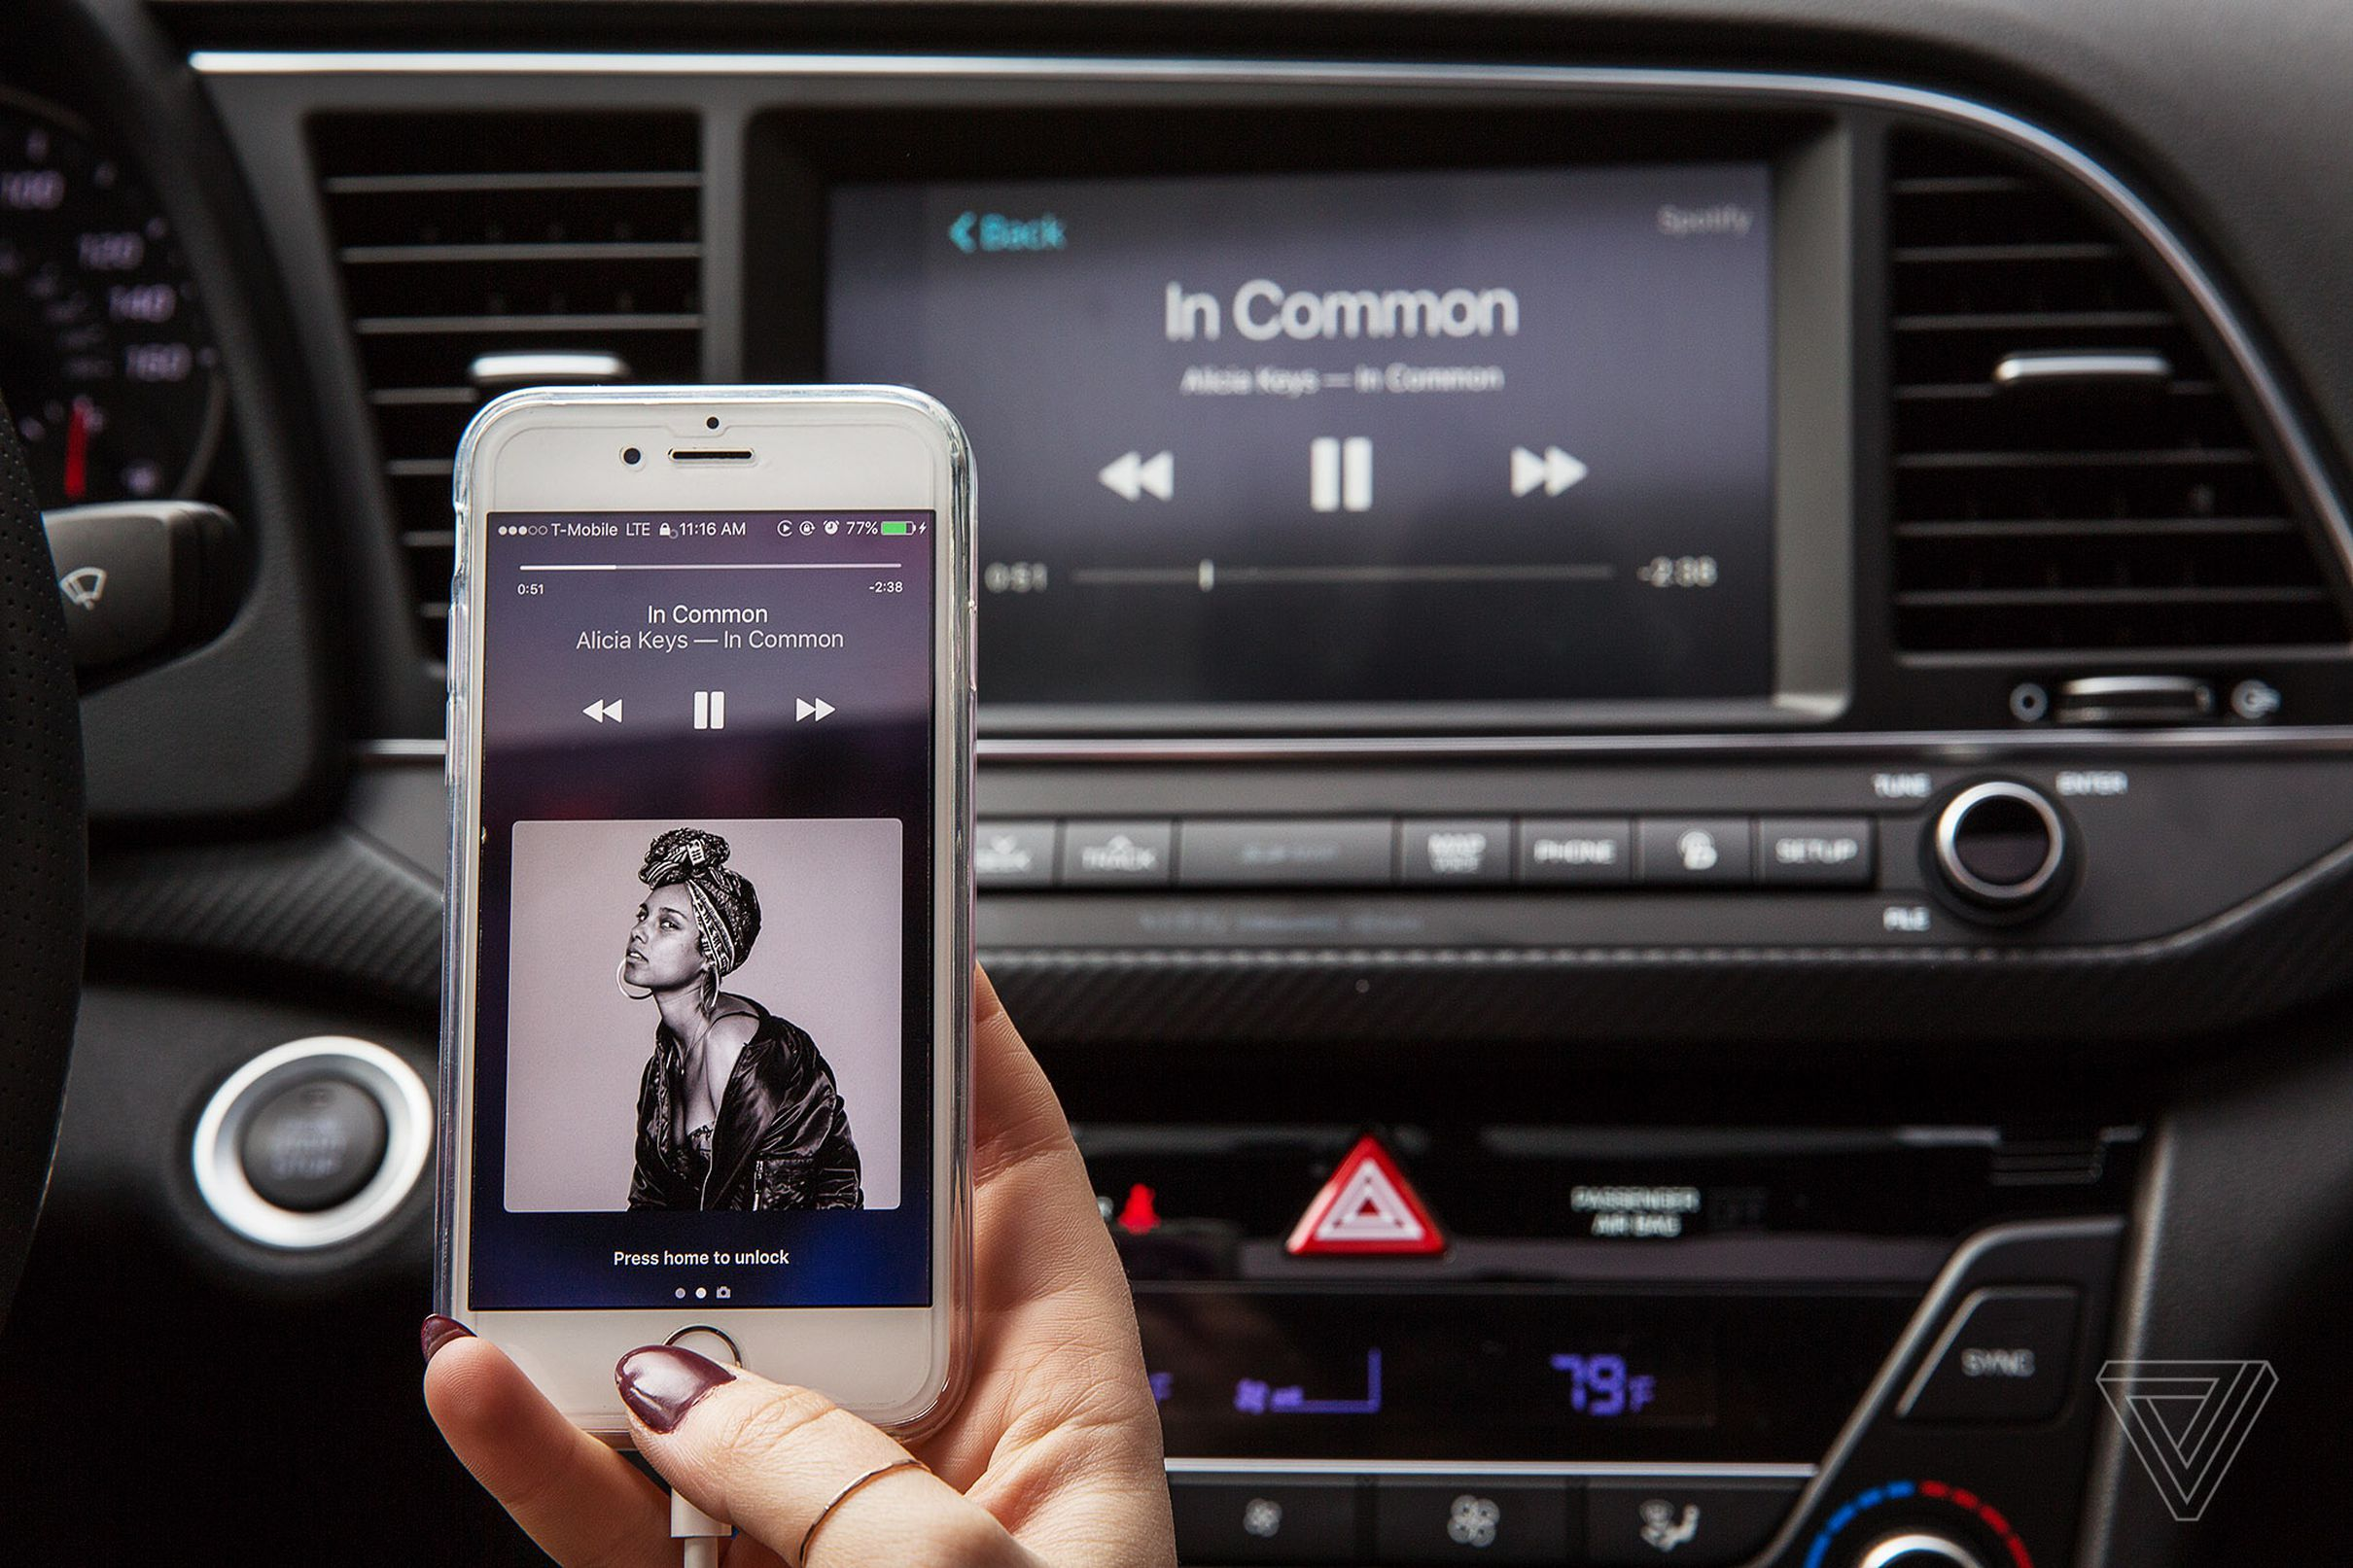 Billboard just gave Spotify and Apple Music an advantage